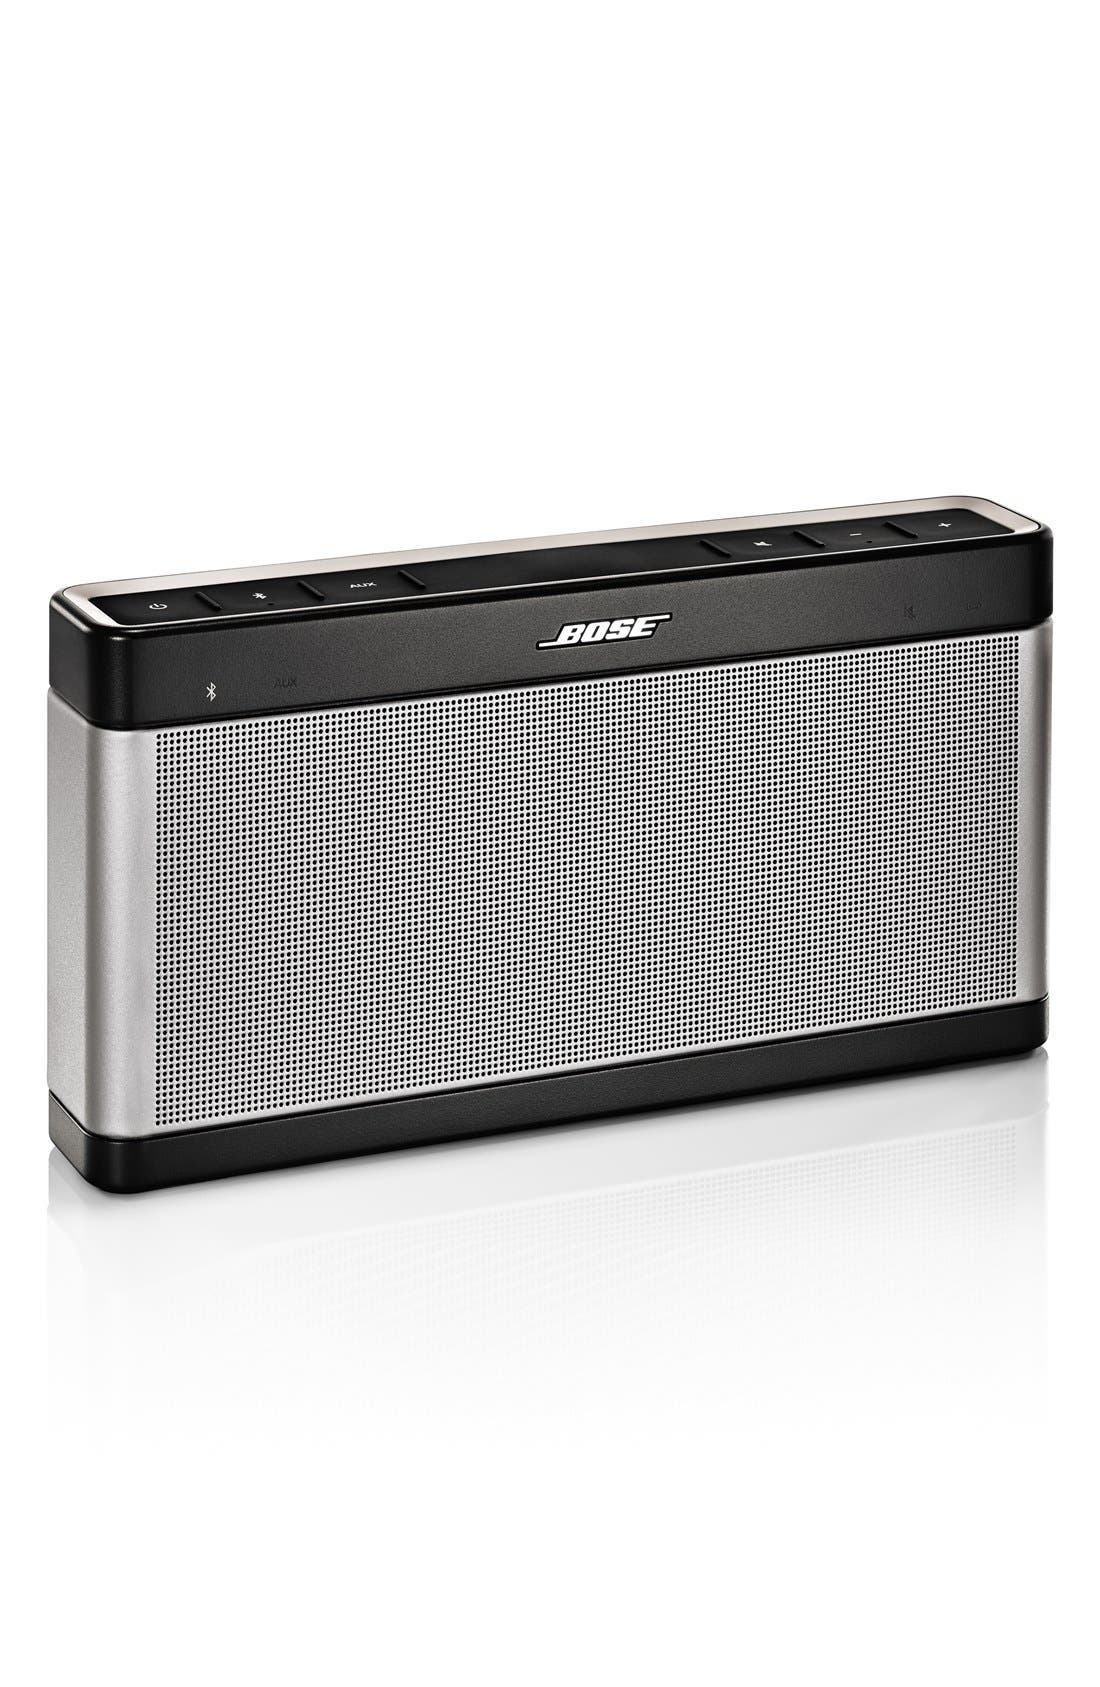 Bose® SoundLink® Bluetooth® Mobile Speaker III